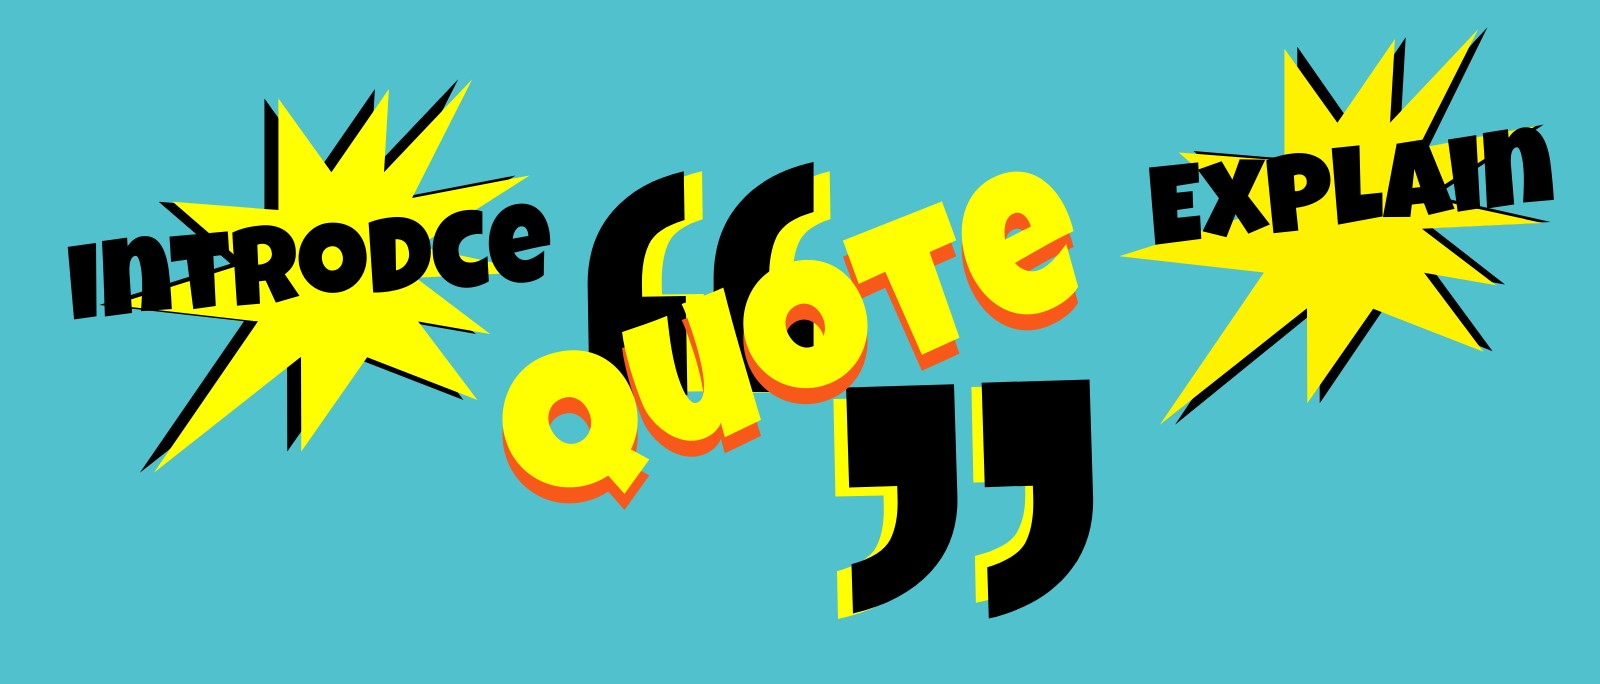 An all-text graphic reminds readers to introduce, quote, explain